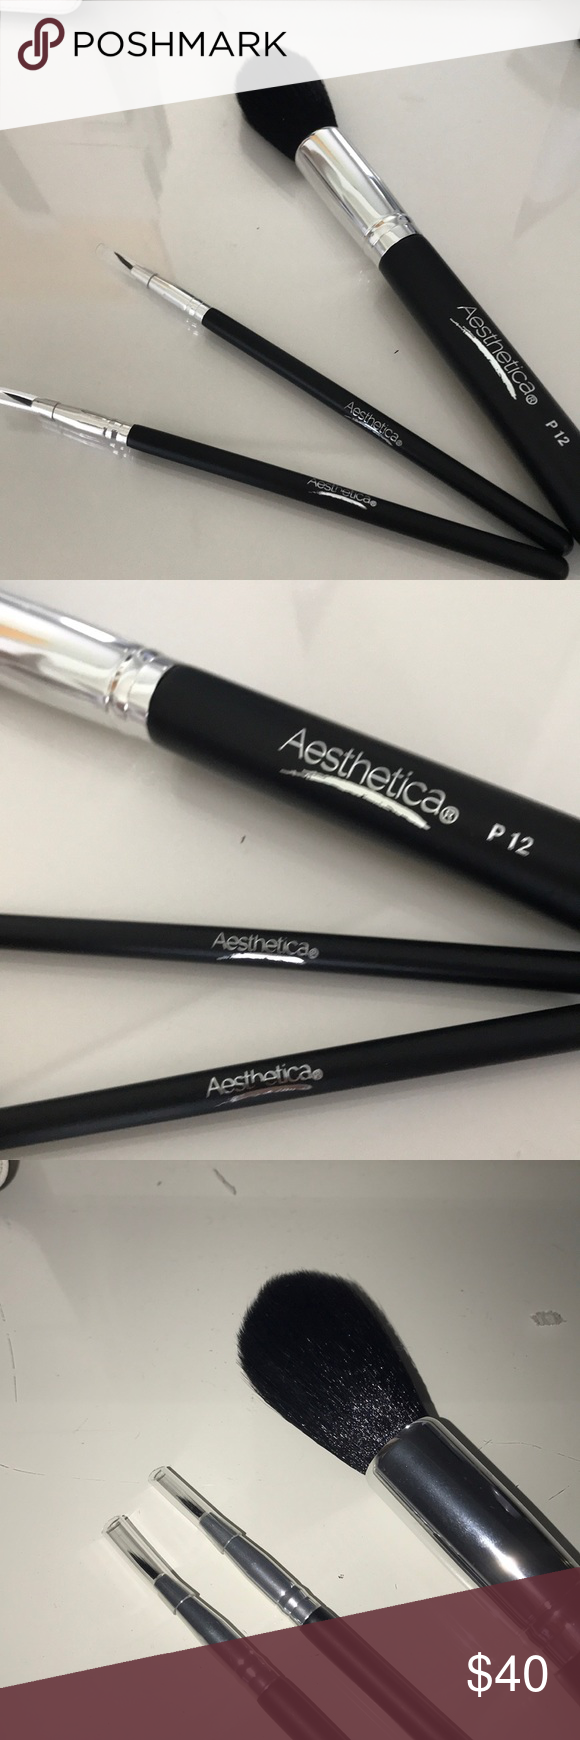 Aesthetica Set of 3 Brushes P12 Face Brush (synthetic